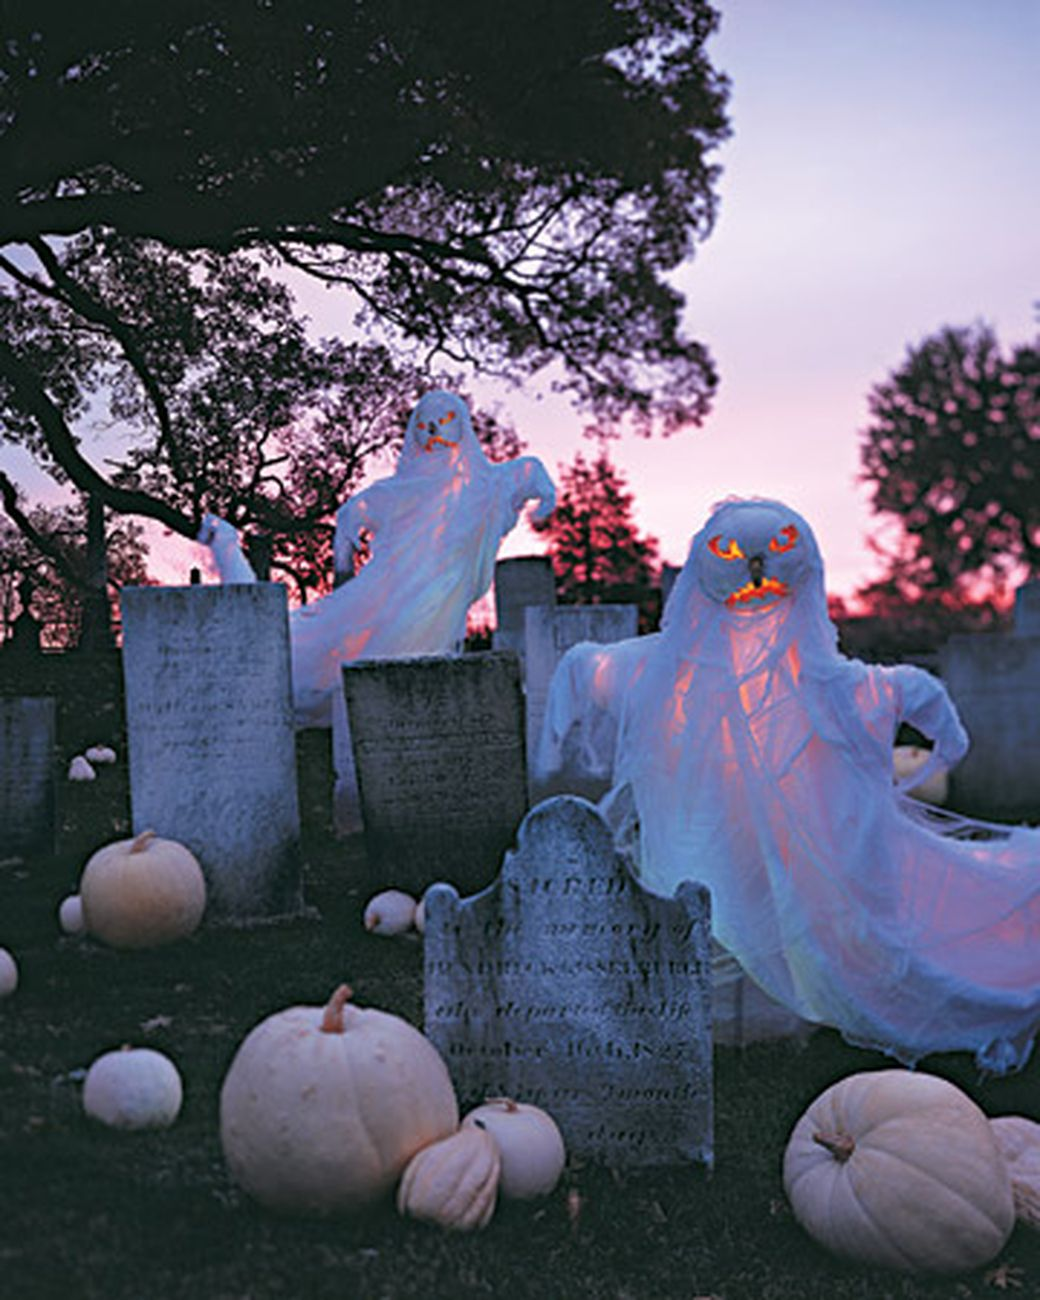 11 best images about diy on Pinterest Lip balm, Martha stewart and - Ghost Halloween Decorations